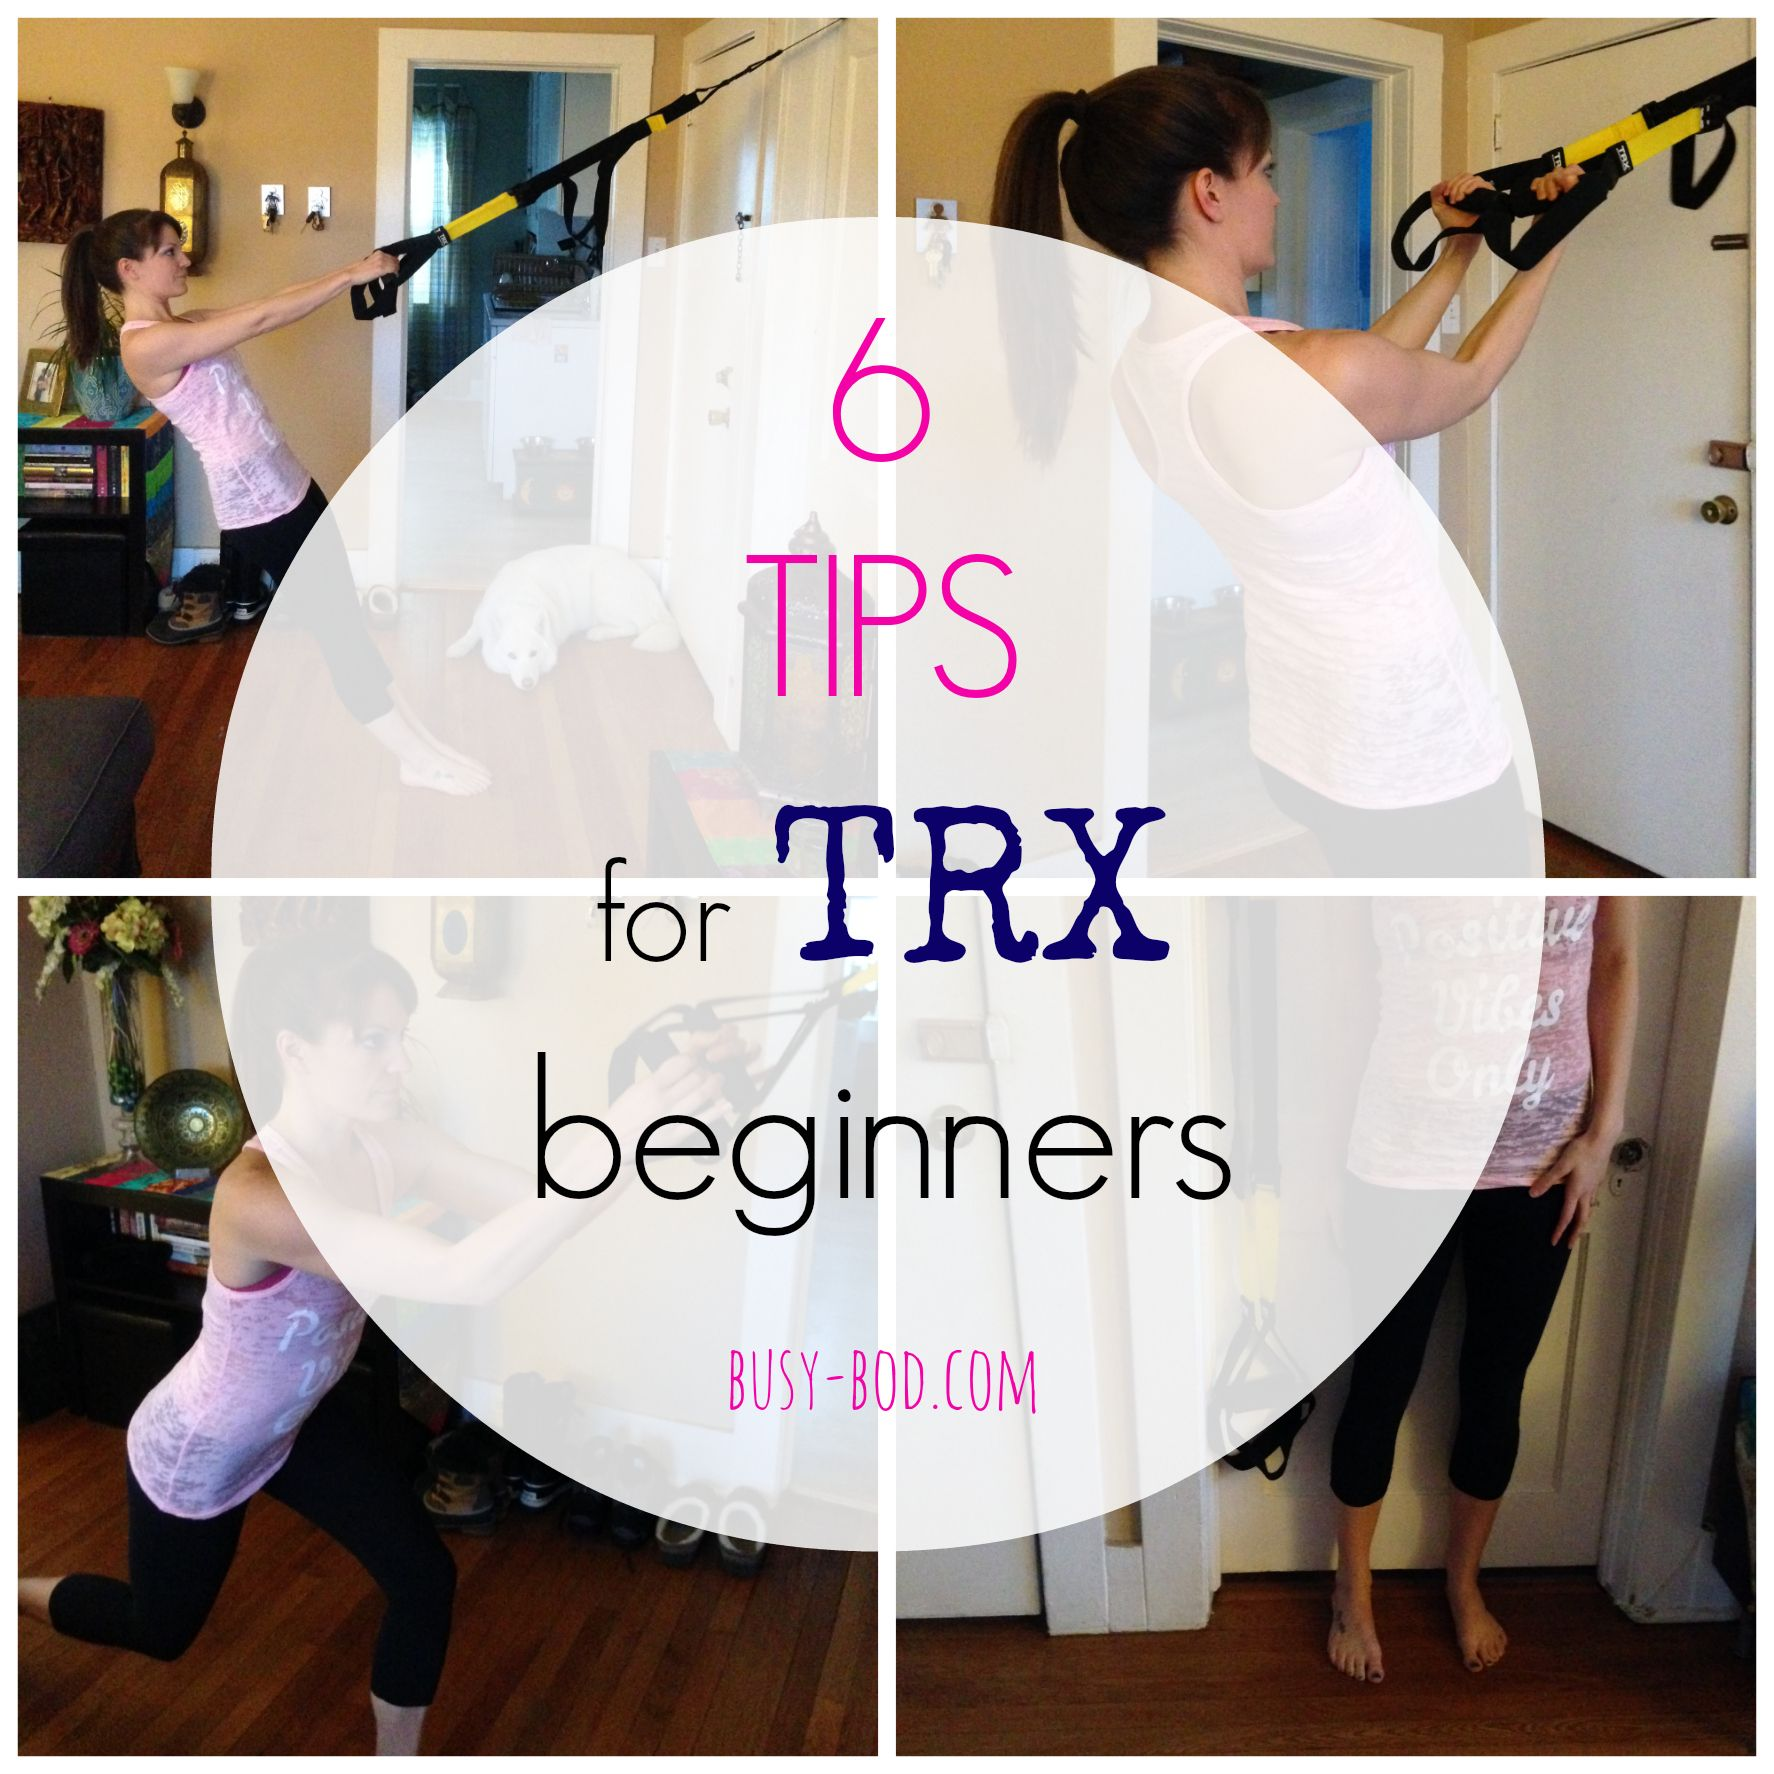 Trx Bands Workout Youtube: 6 Tips For TRX Beginners.jpg